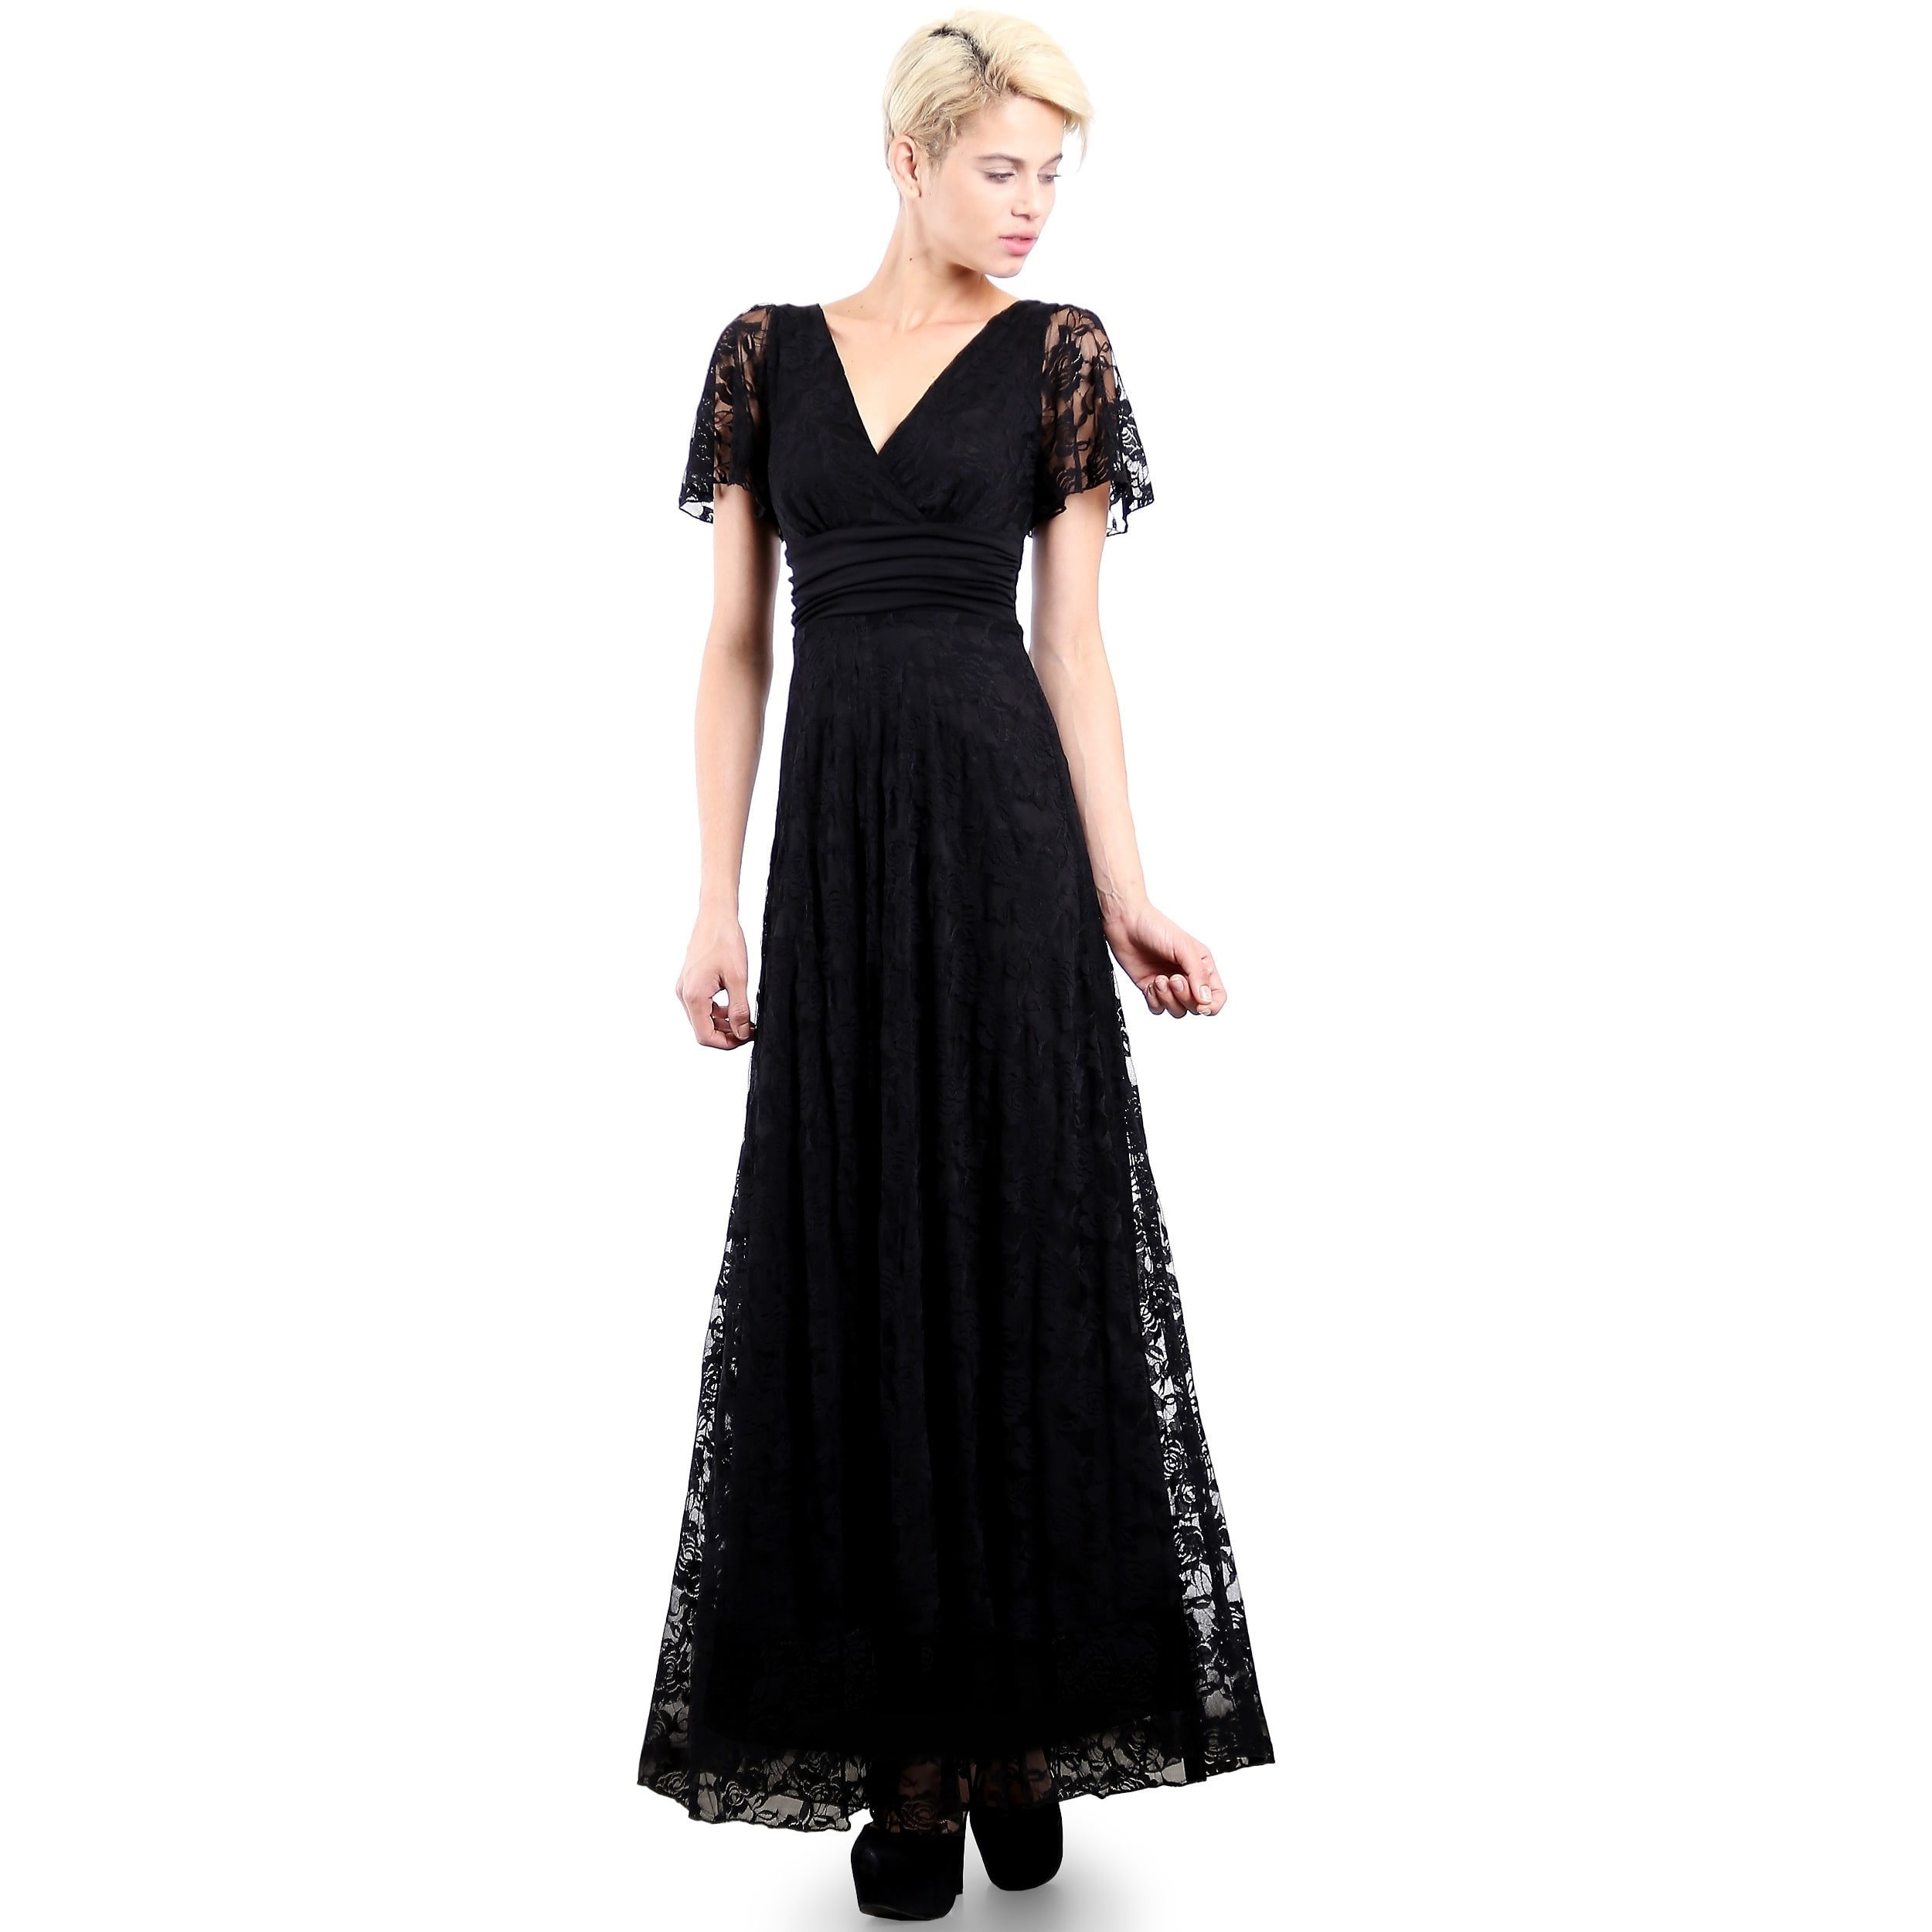 46ff6fe9c502 Evanese Women's Elegant Lace Evening Party Formal Long Dress Gown with  Empire Waist Full Skirt and Short Sleeves